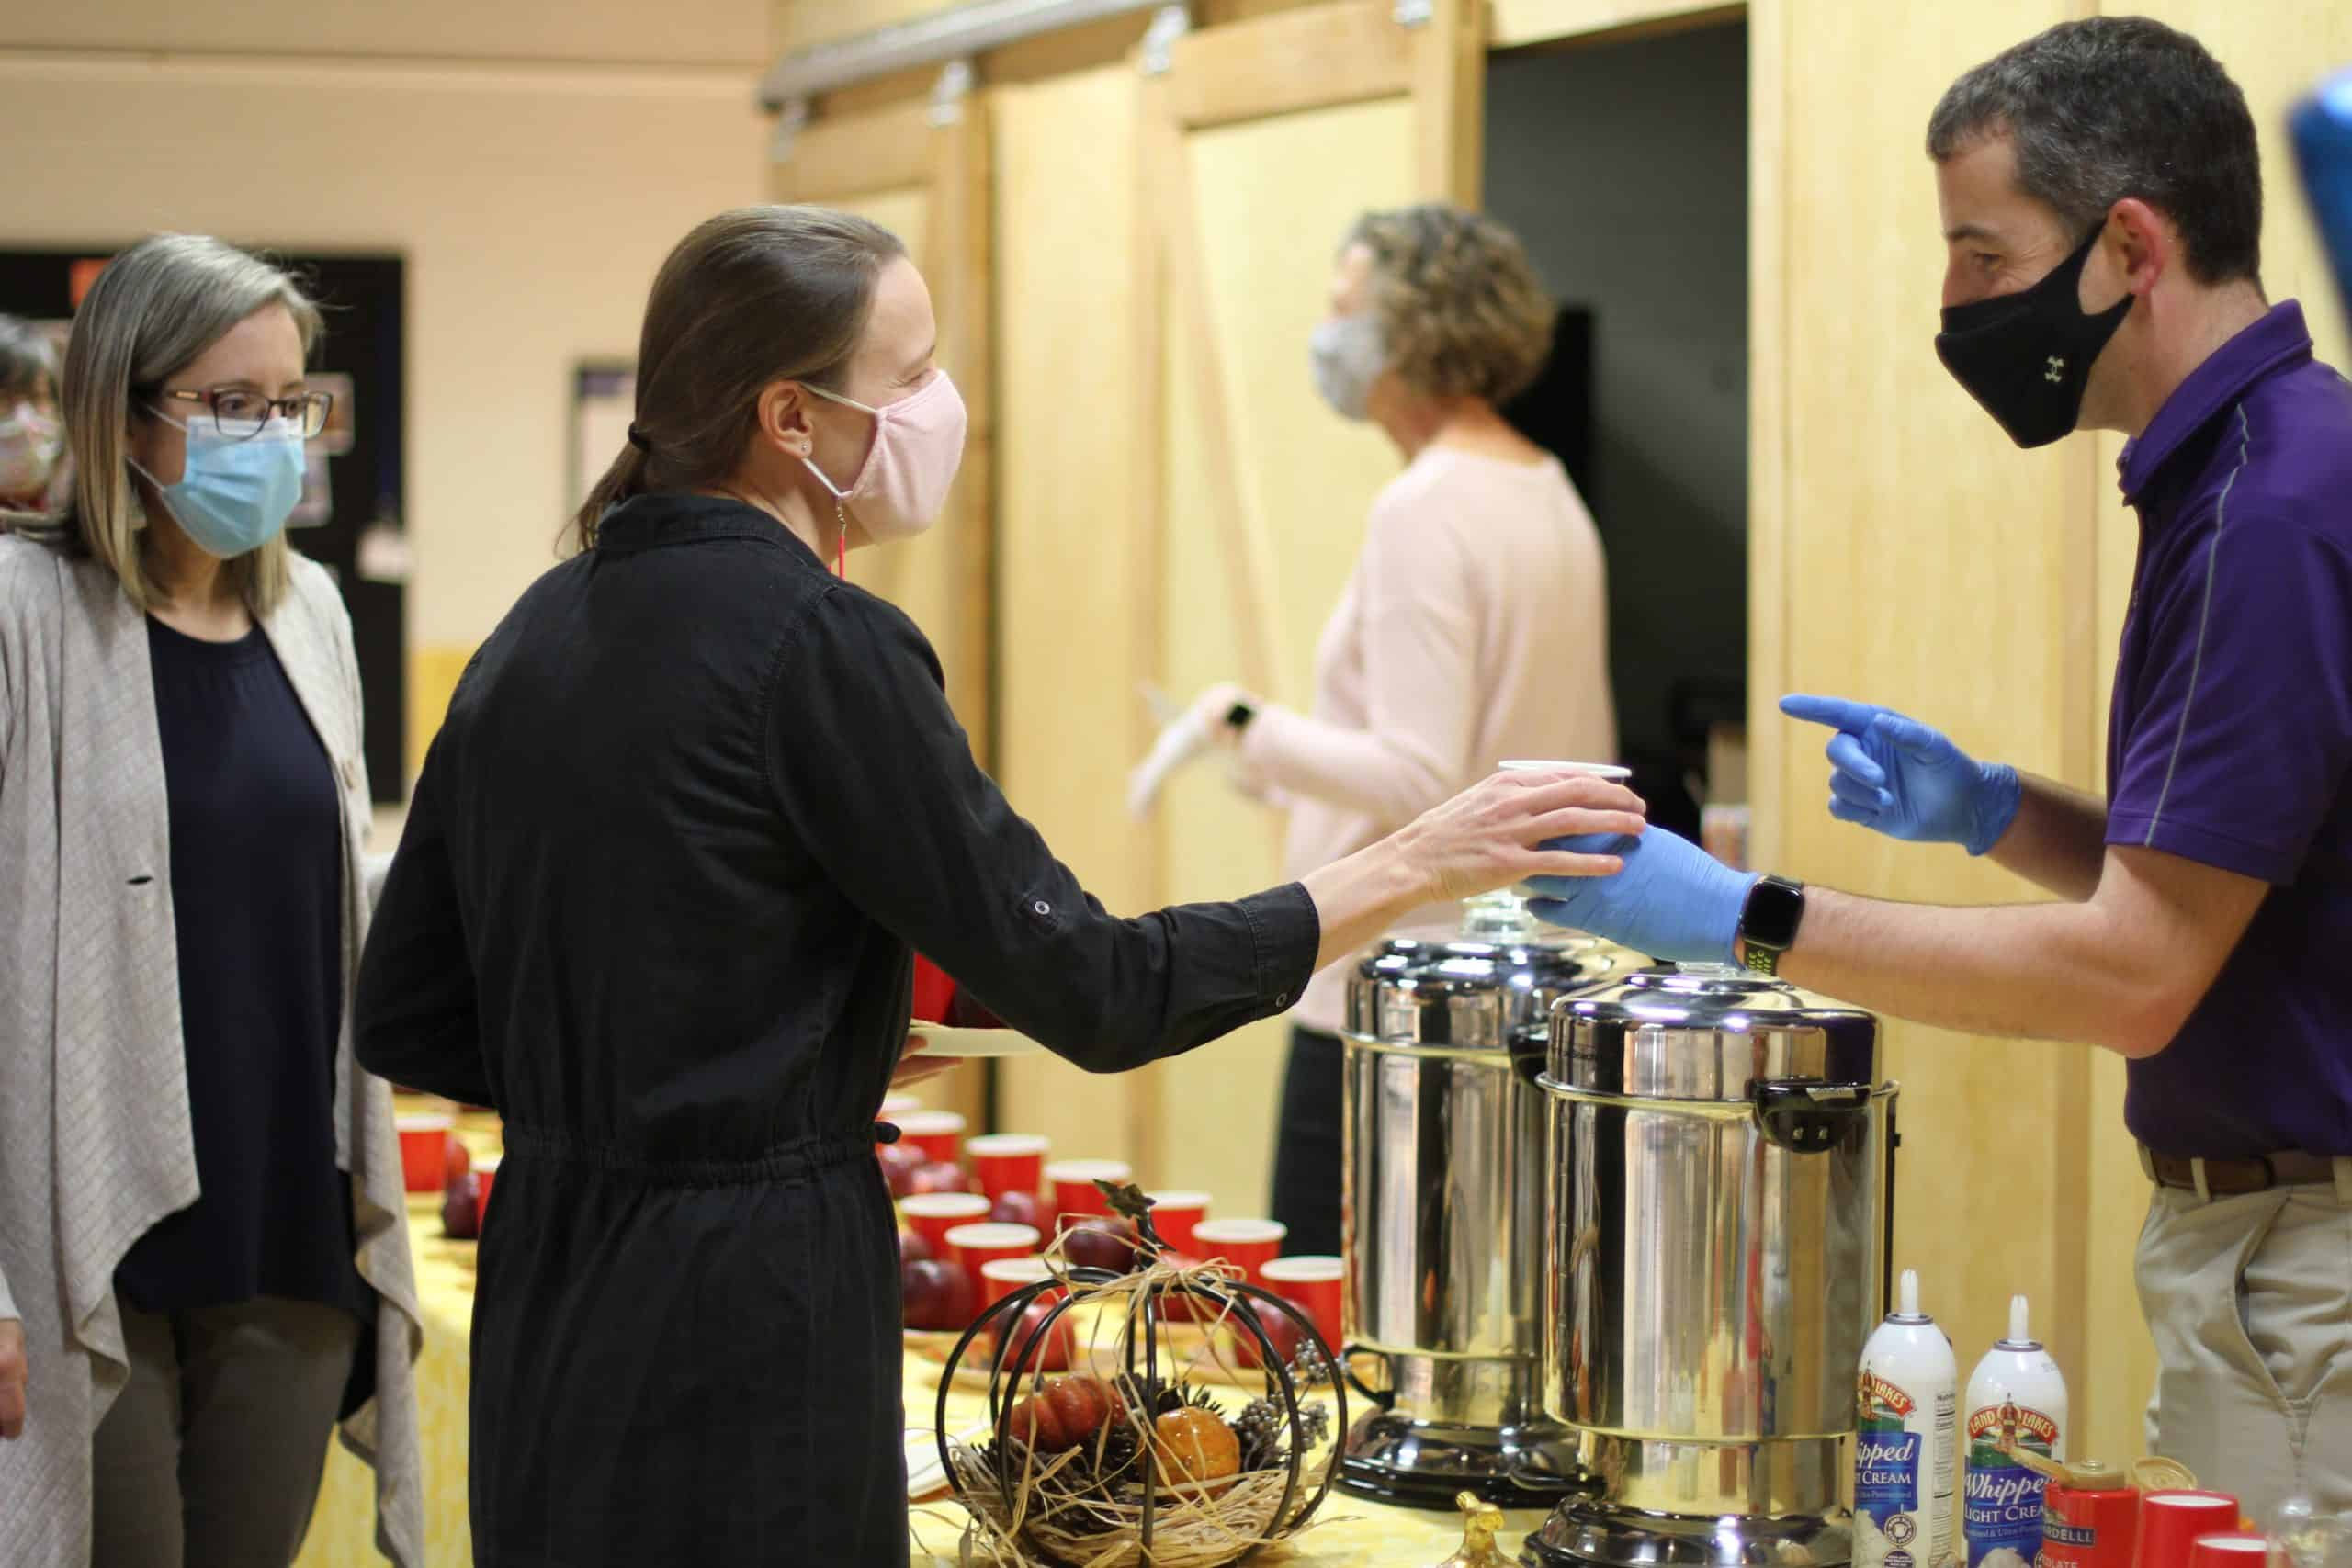 Sarah Mitch, science teacher, receives a beverage from Scott Rogers, board of directors, during a board appreciation event